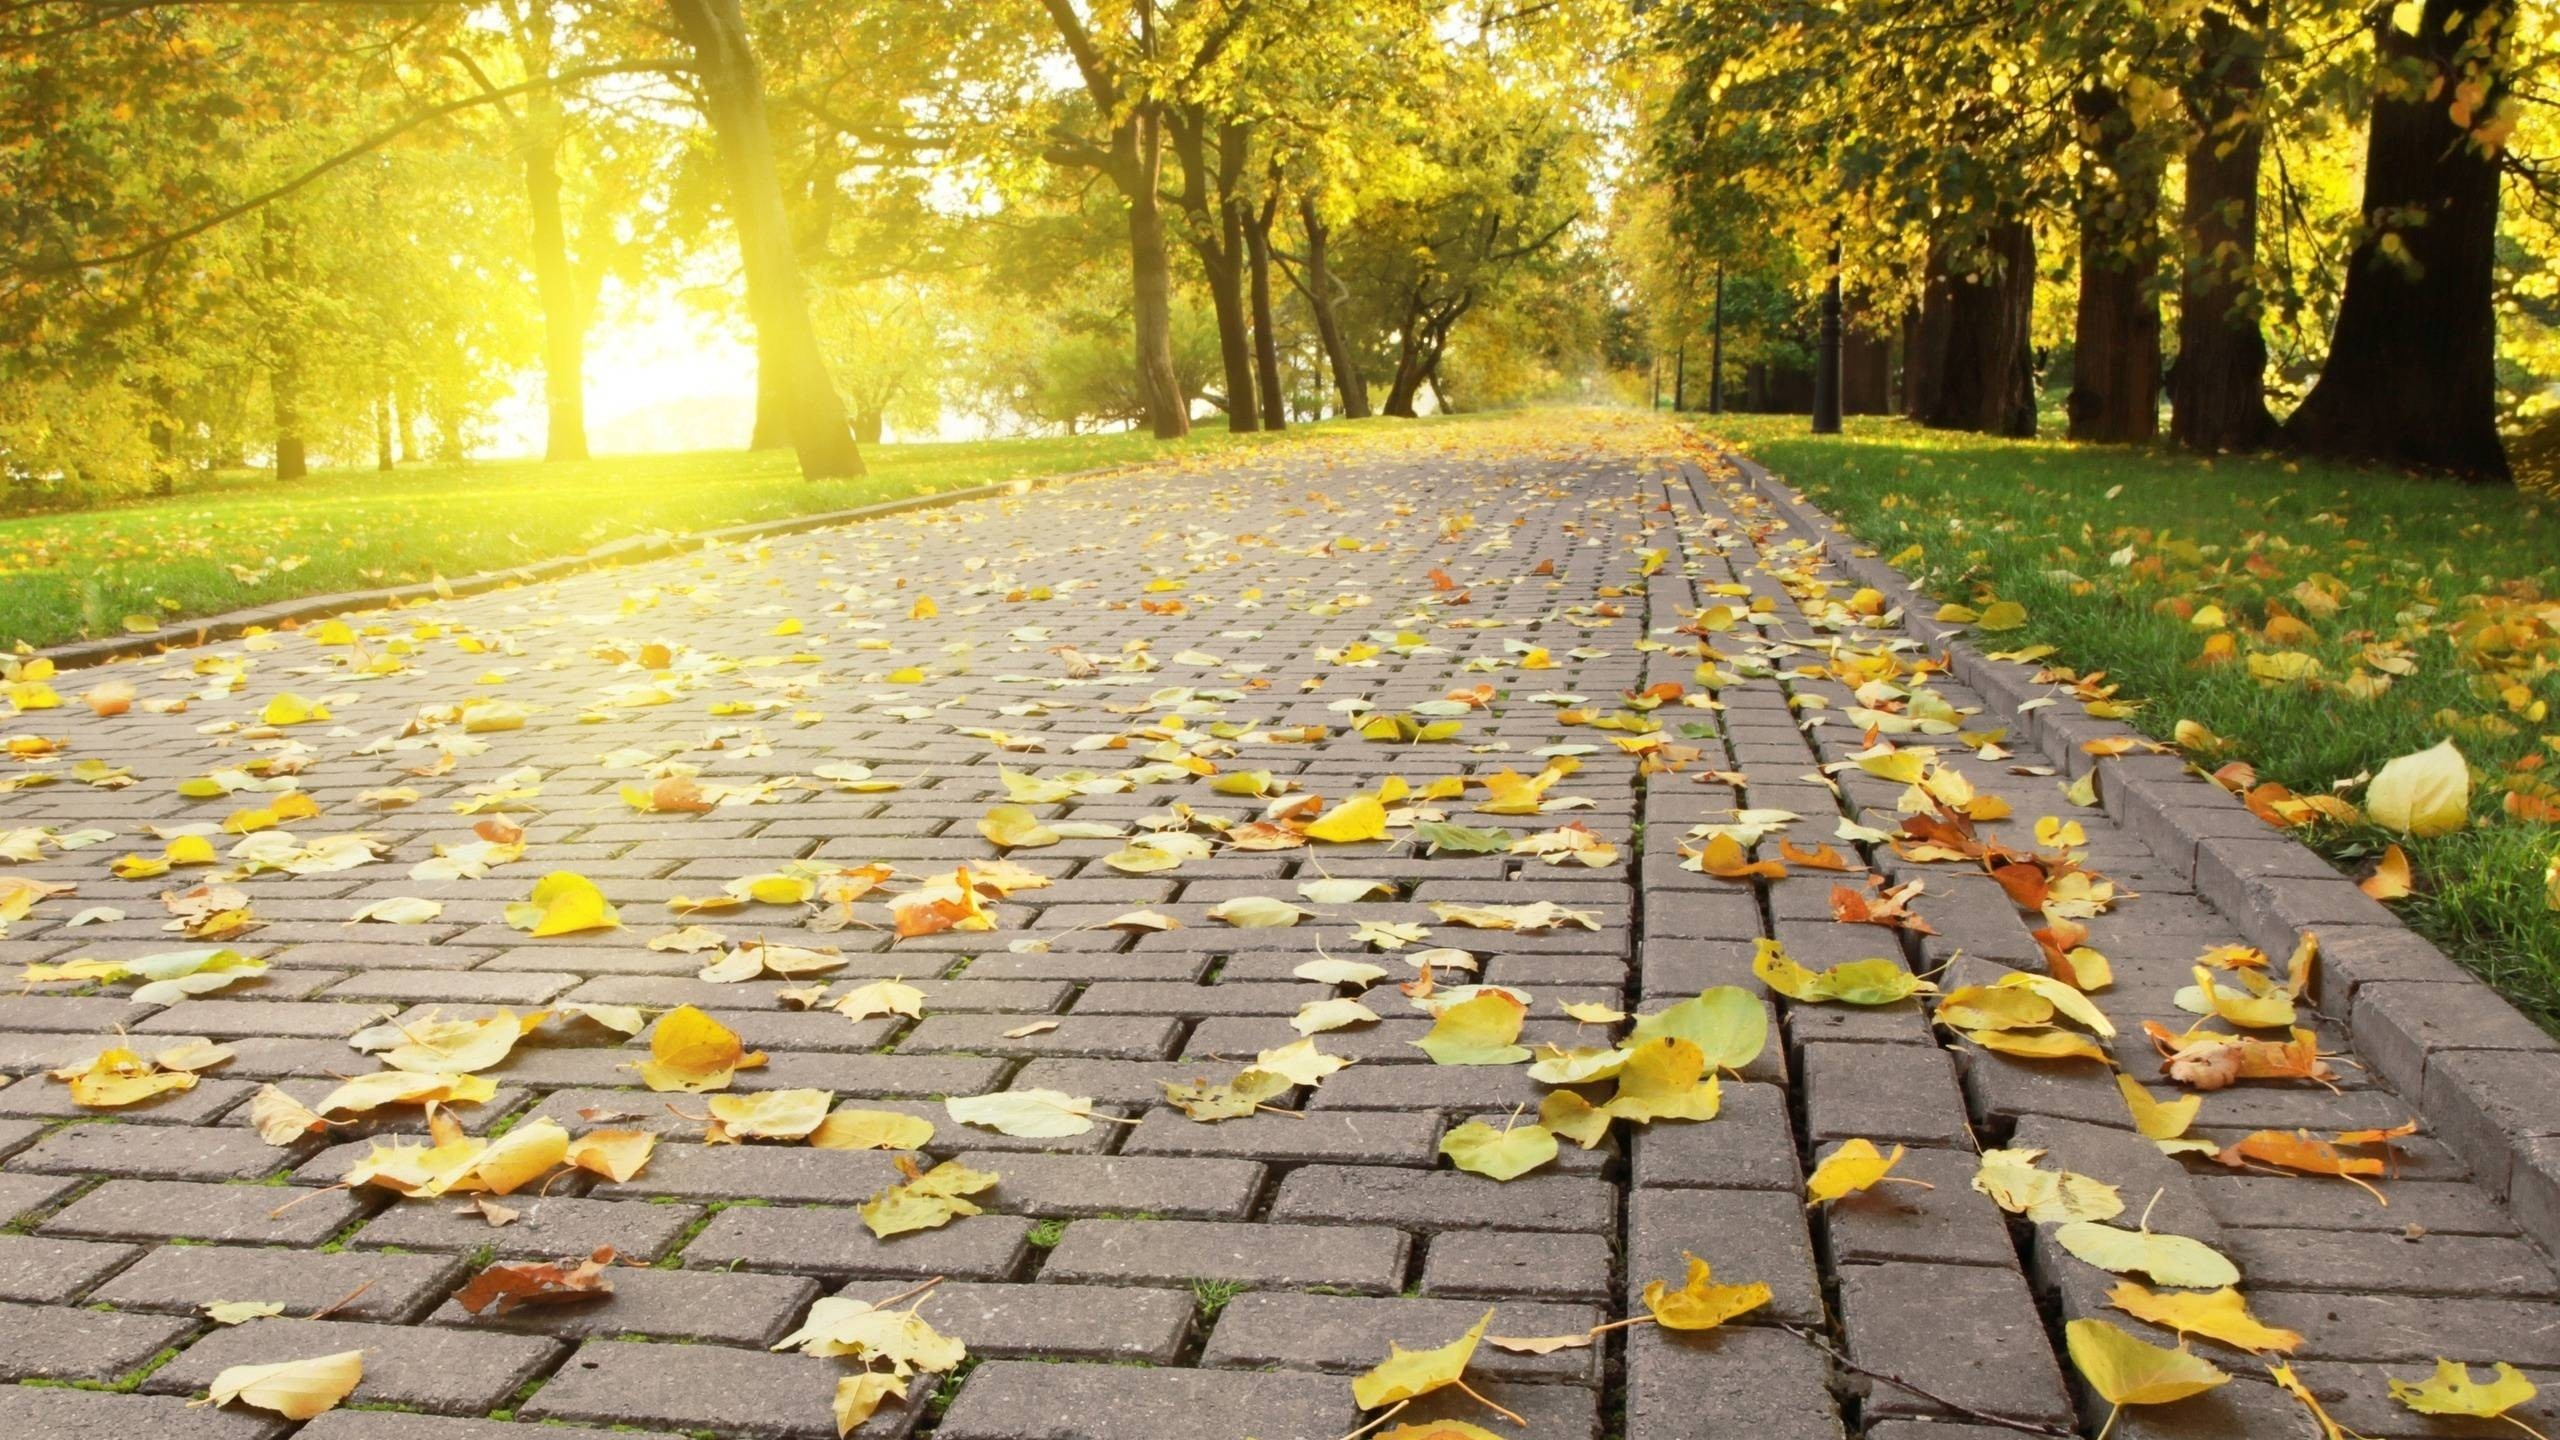 Autumn Leaves On The Pavement